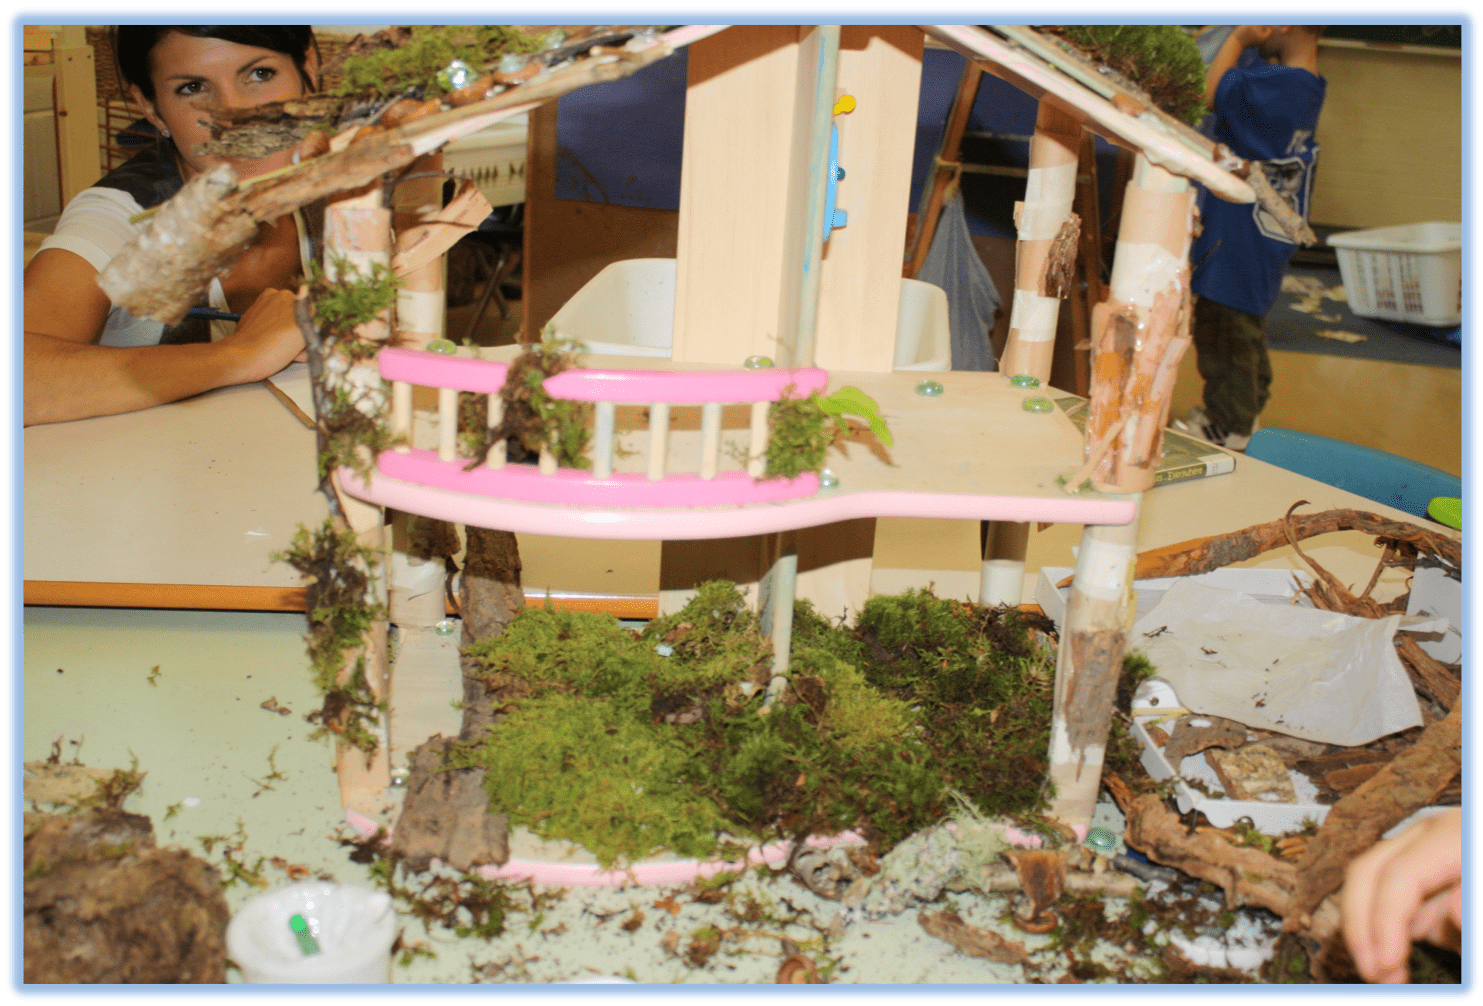 Creative play with model house